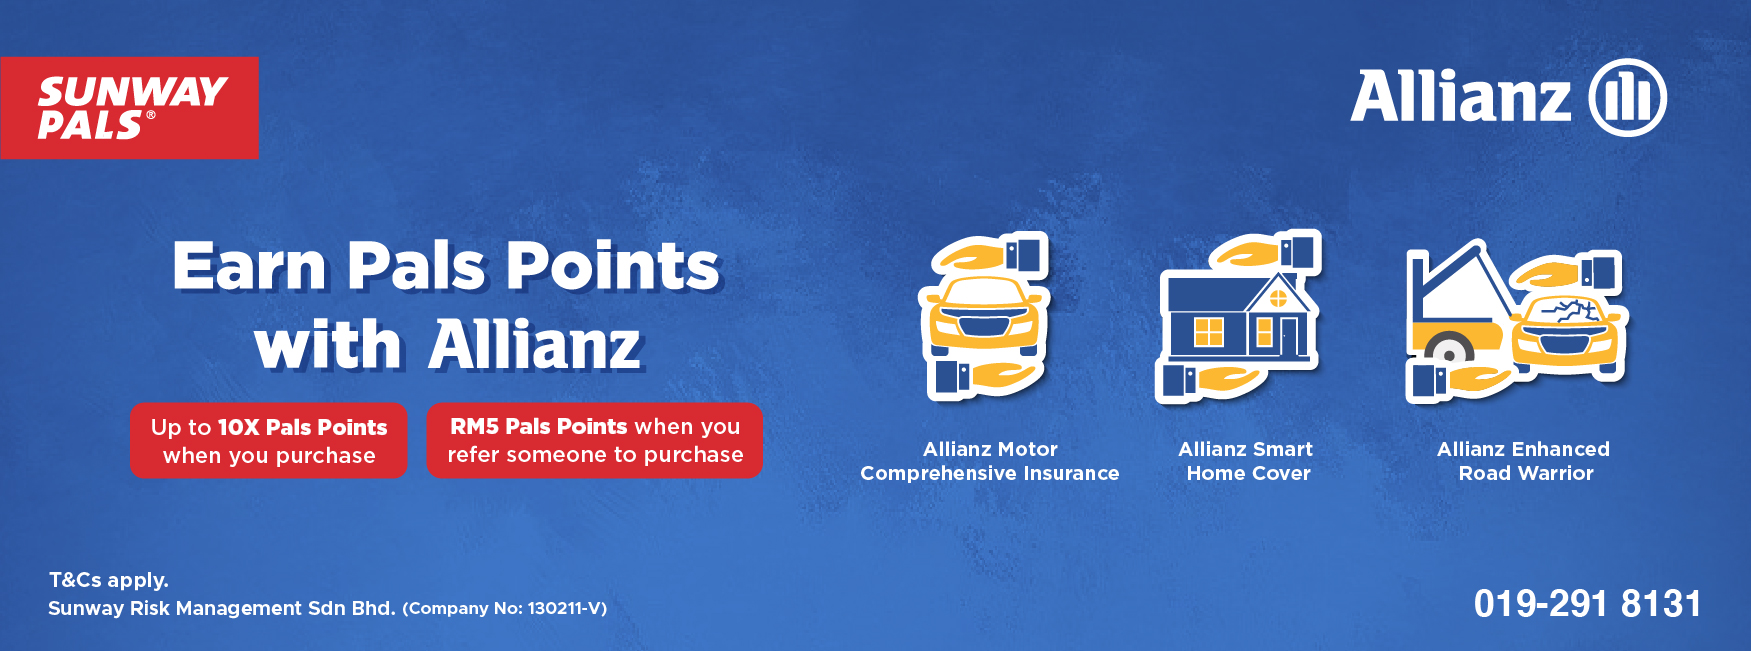 Earn Points with Allianz